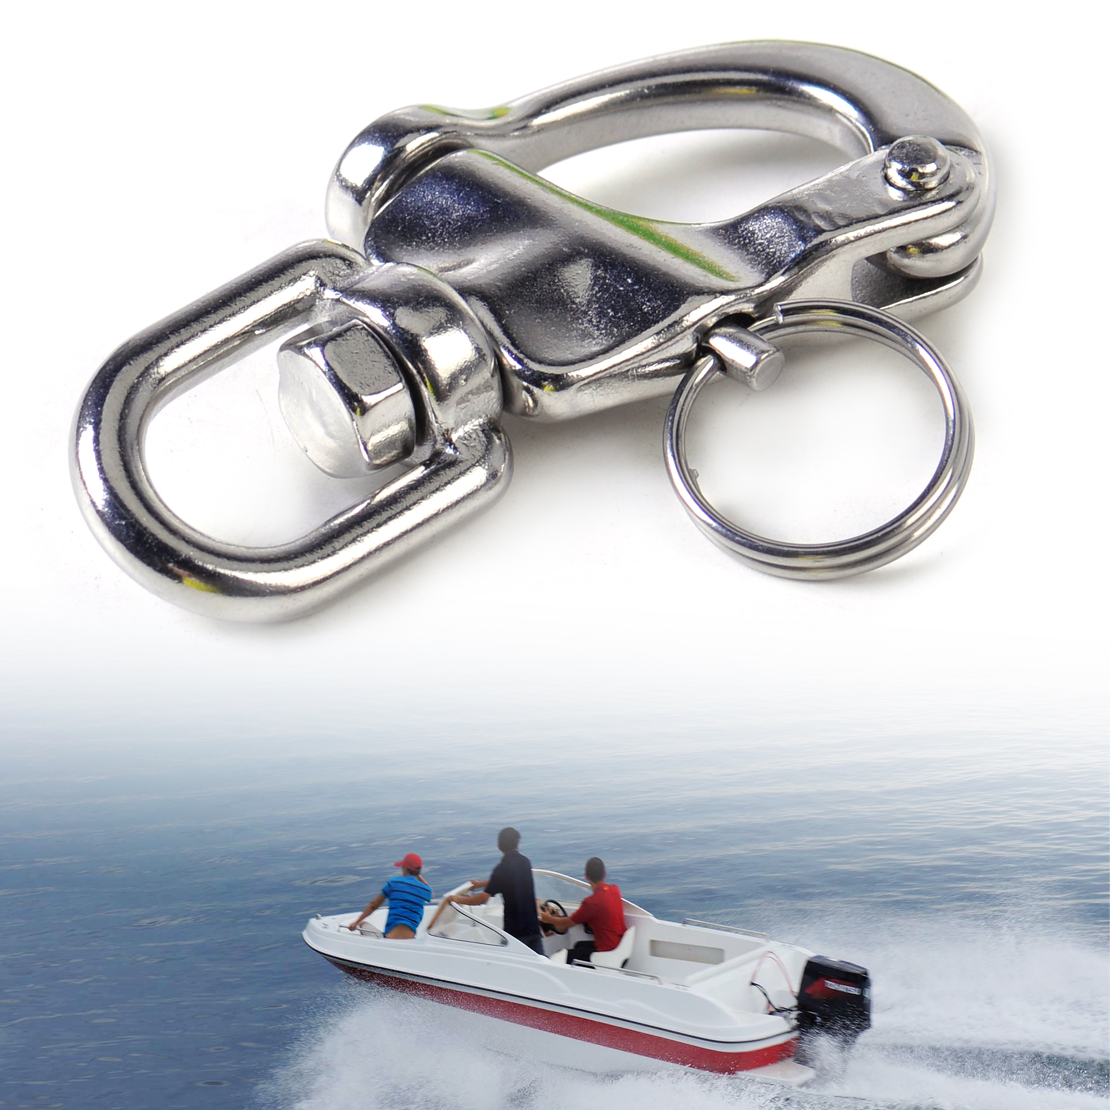 DWCX New 7 cm Stainless Steel Heavy Duty Snap Shackle D Ring Swivel Bail Fit for Marine Boat Yacht Sailing Hardware